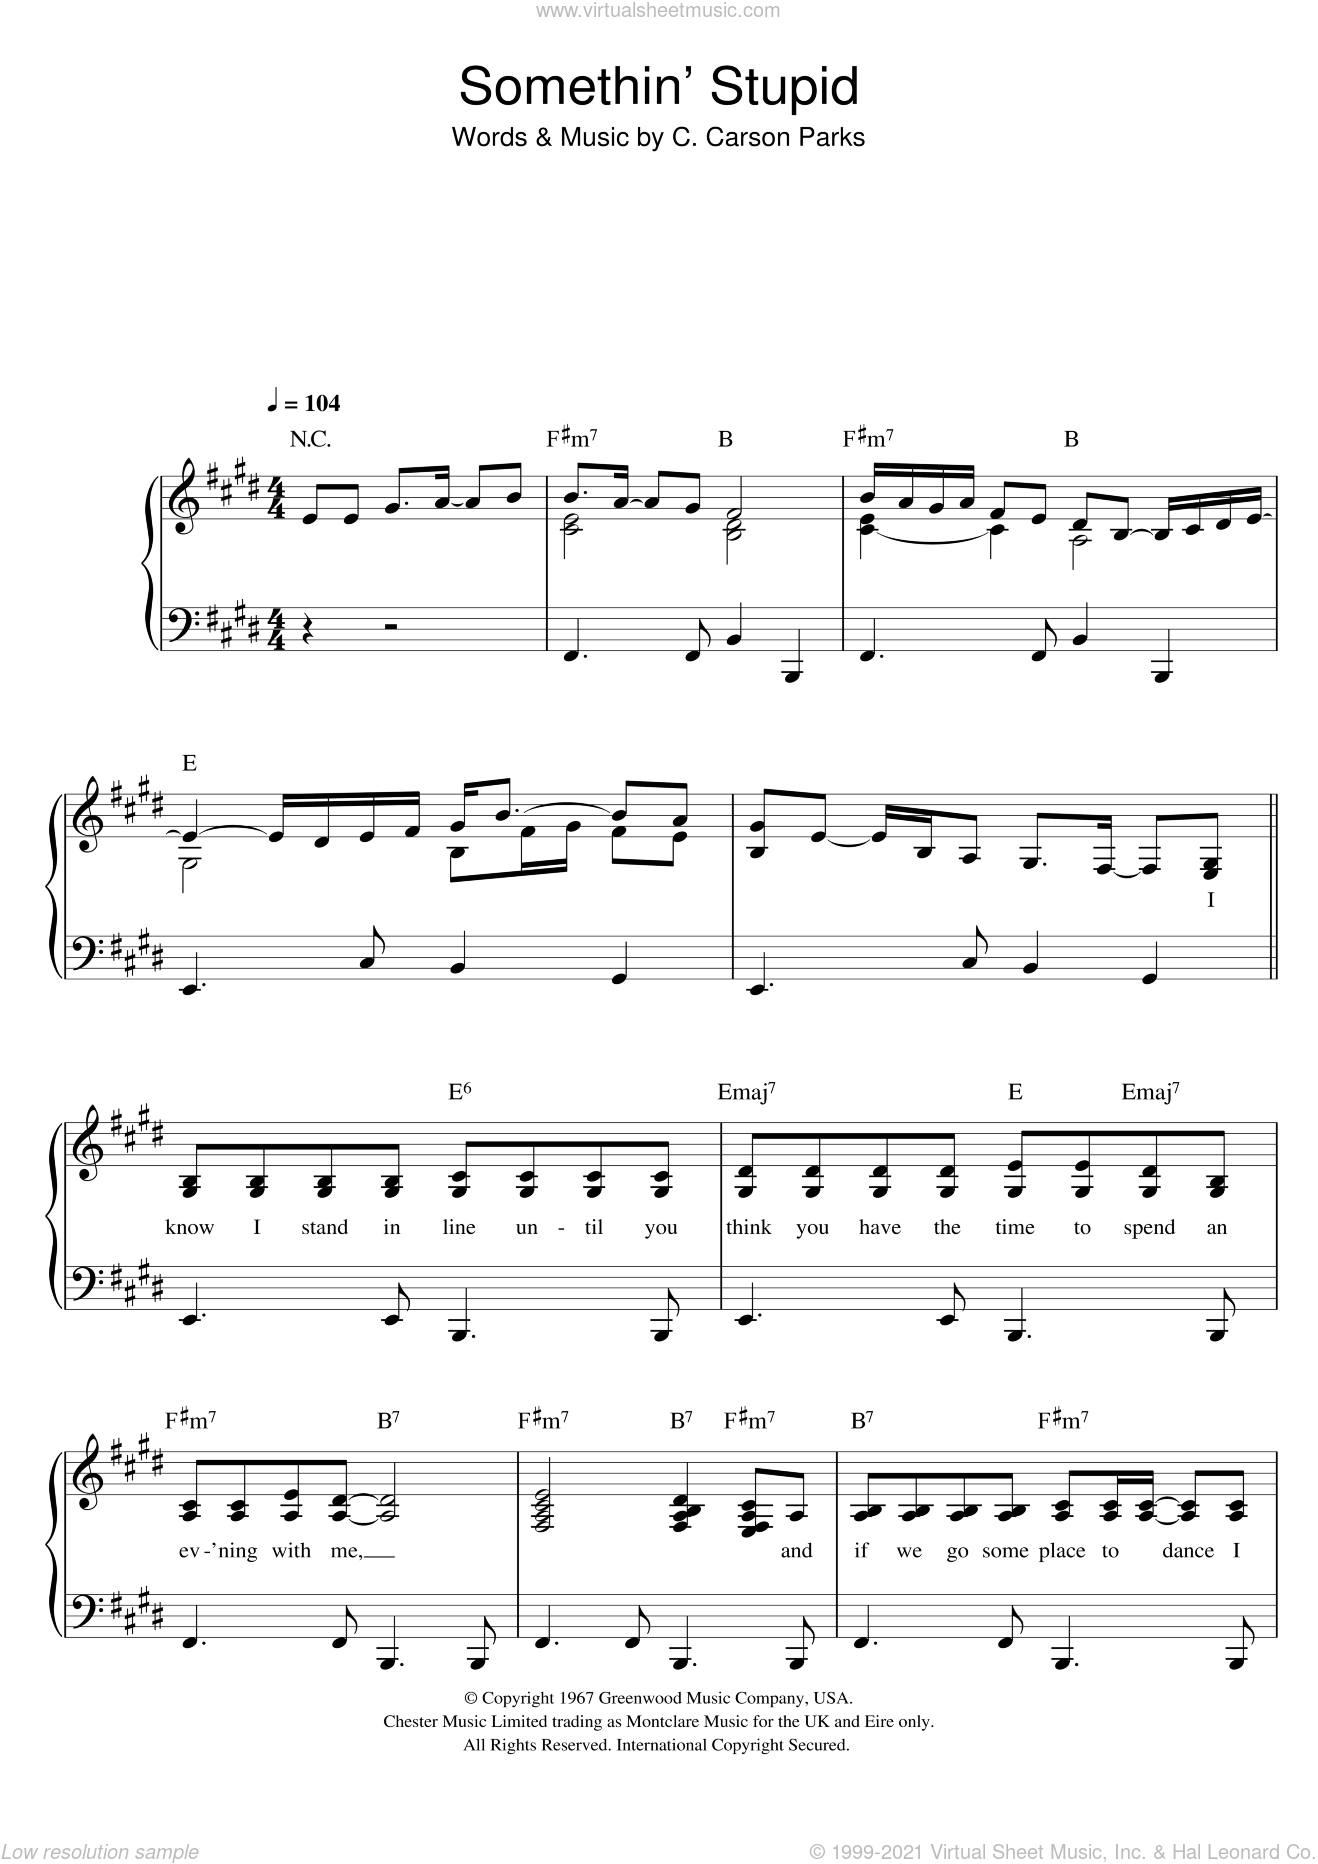 Somethin' Stupid sheet music for voice and piano by Frank Sinatra, Nancy Sinatra, Nicole Kidman, Robbie Williams and C. Carson Parks, intermediate skill level